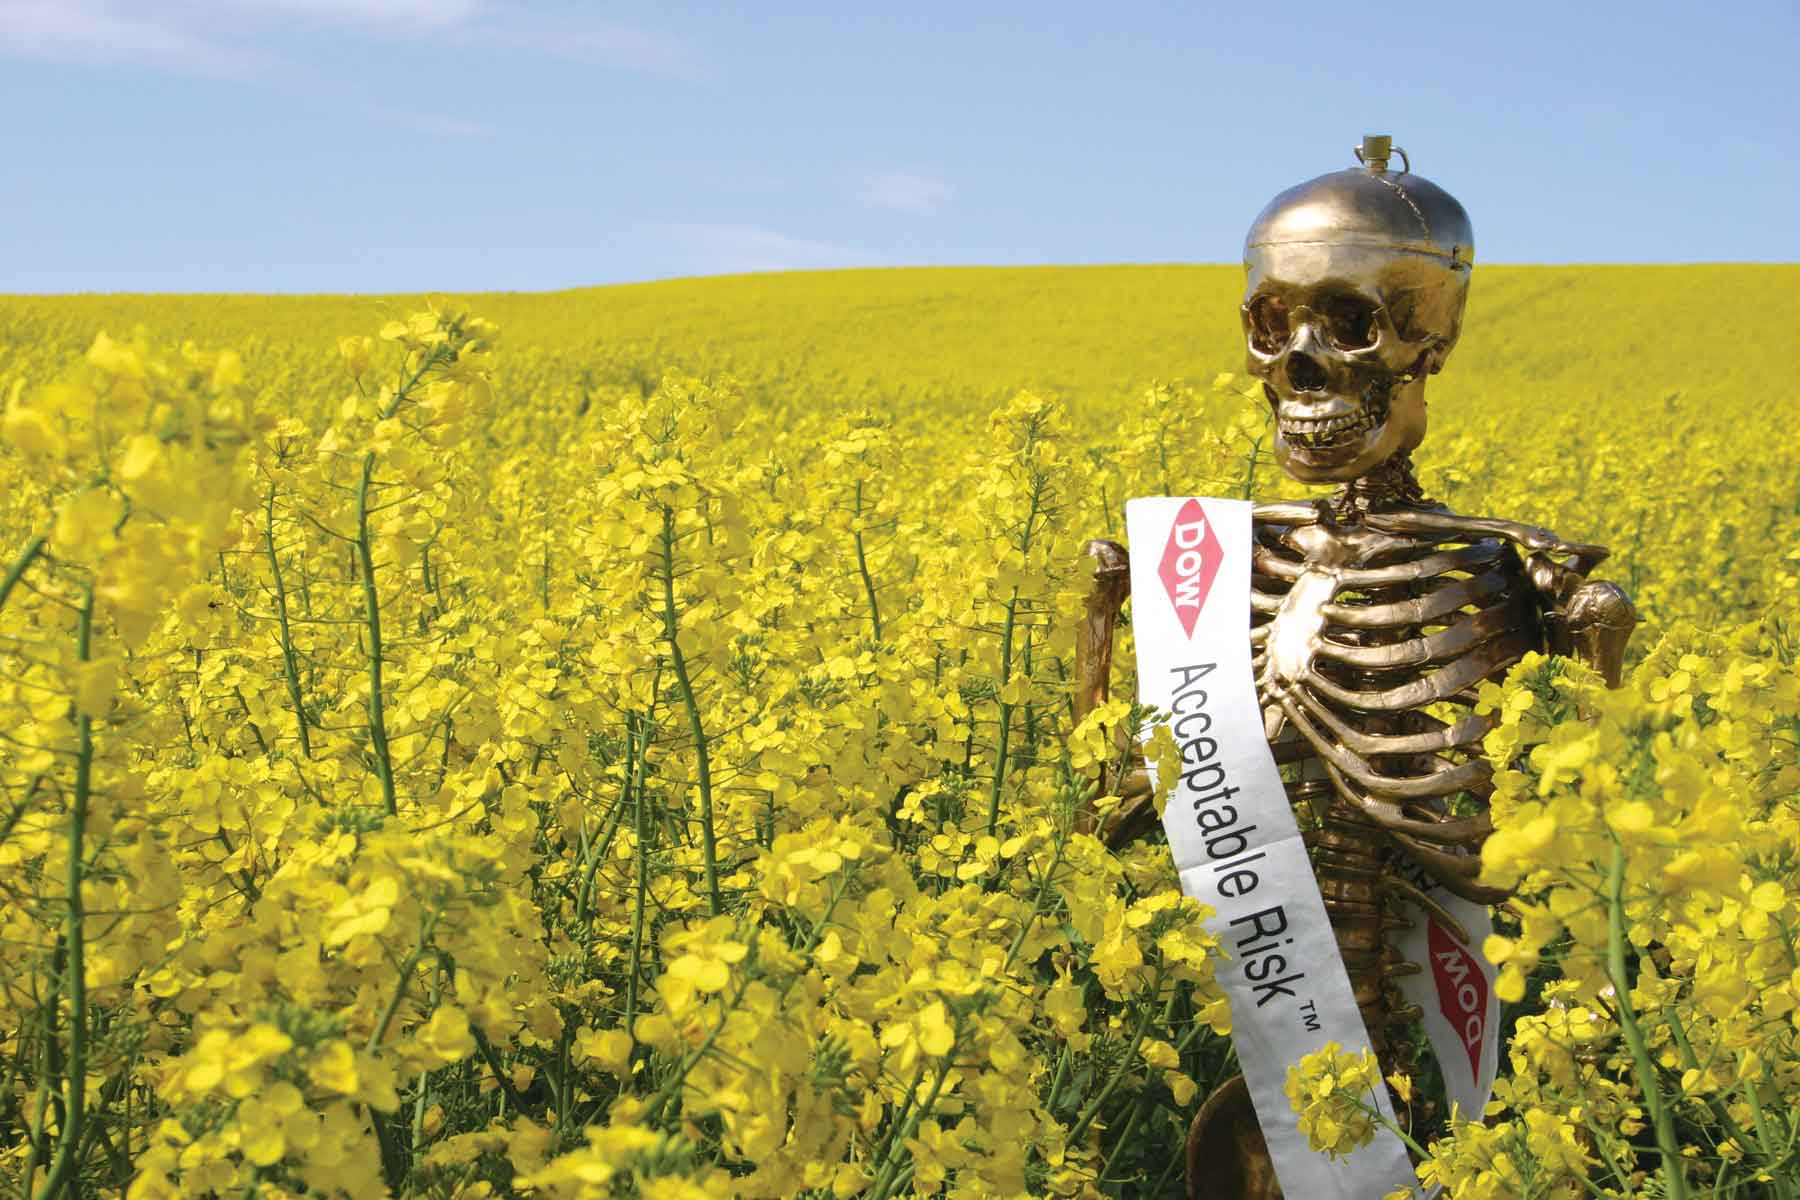 Gilda, The Golden Skeleton. Production still from The Yes Men Fix the World, 2008.